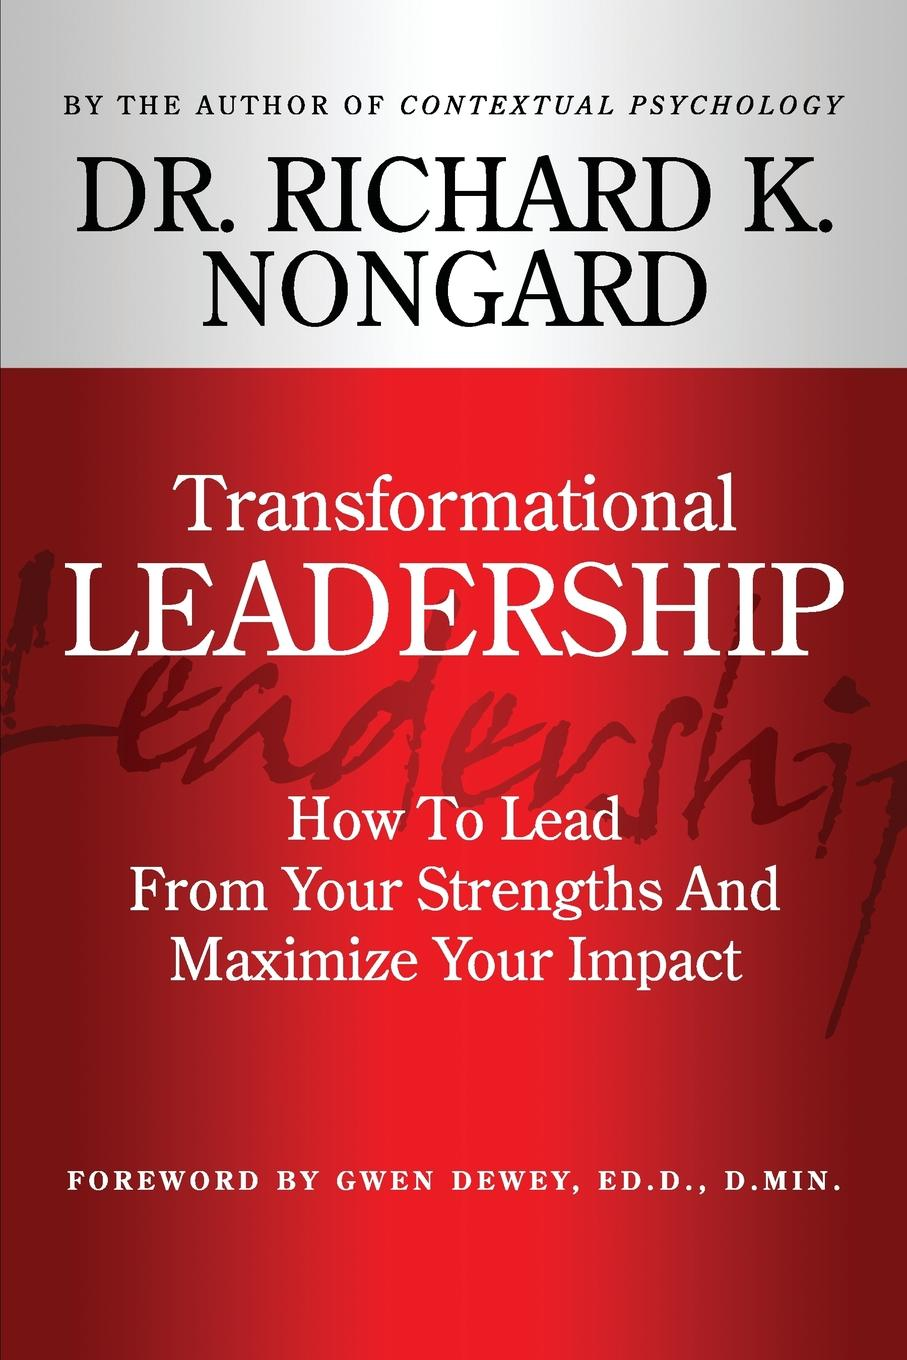 Richard Nongard Transformational Leadership How to Lead from Your Strengths and Maximize Your Impact richard nongard transformational leadership how to lead from your strengths and maximize your impact